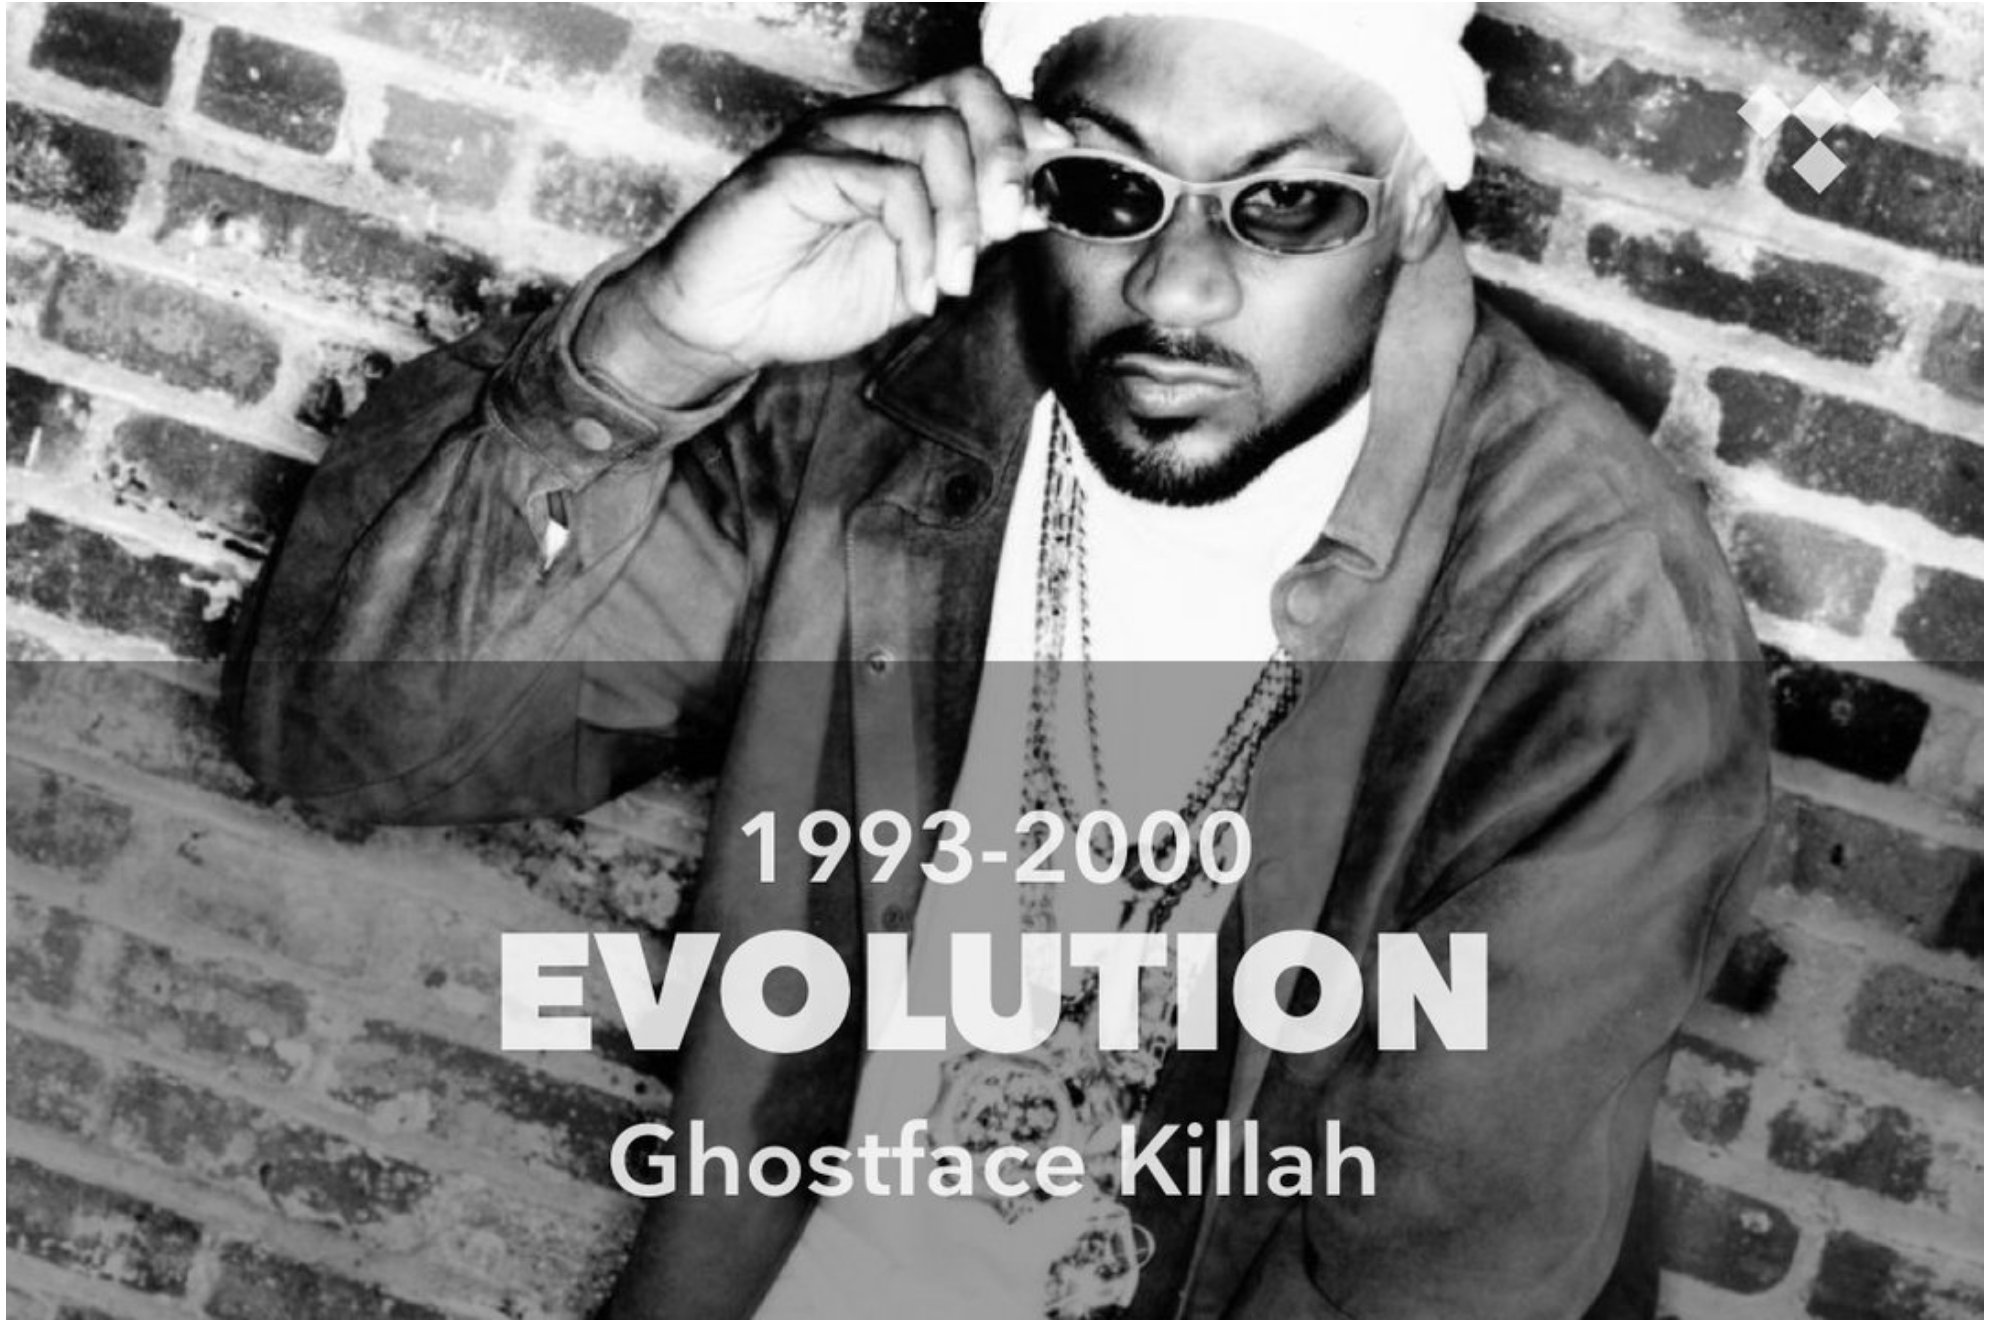 Evolution: Ghostface Killah (1993-2000) https://t.co/24HDWtcfhq #TIDAL https://t.co/tAdiebctyk